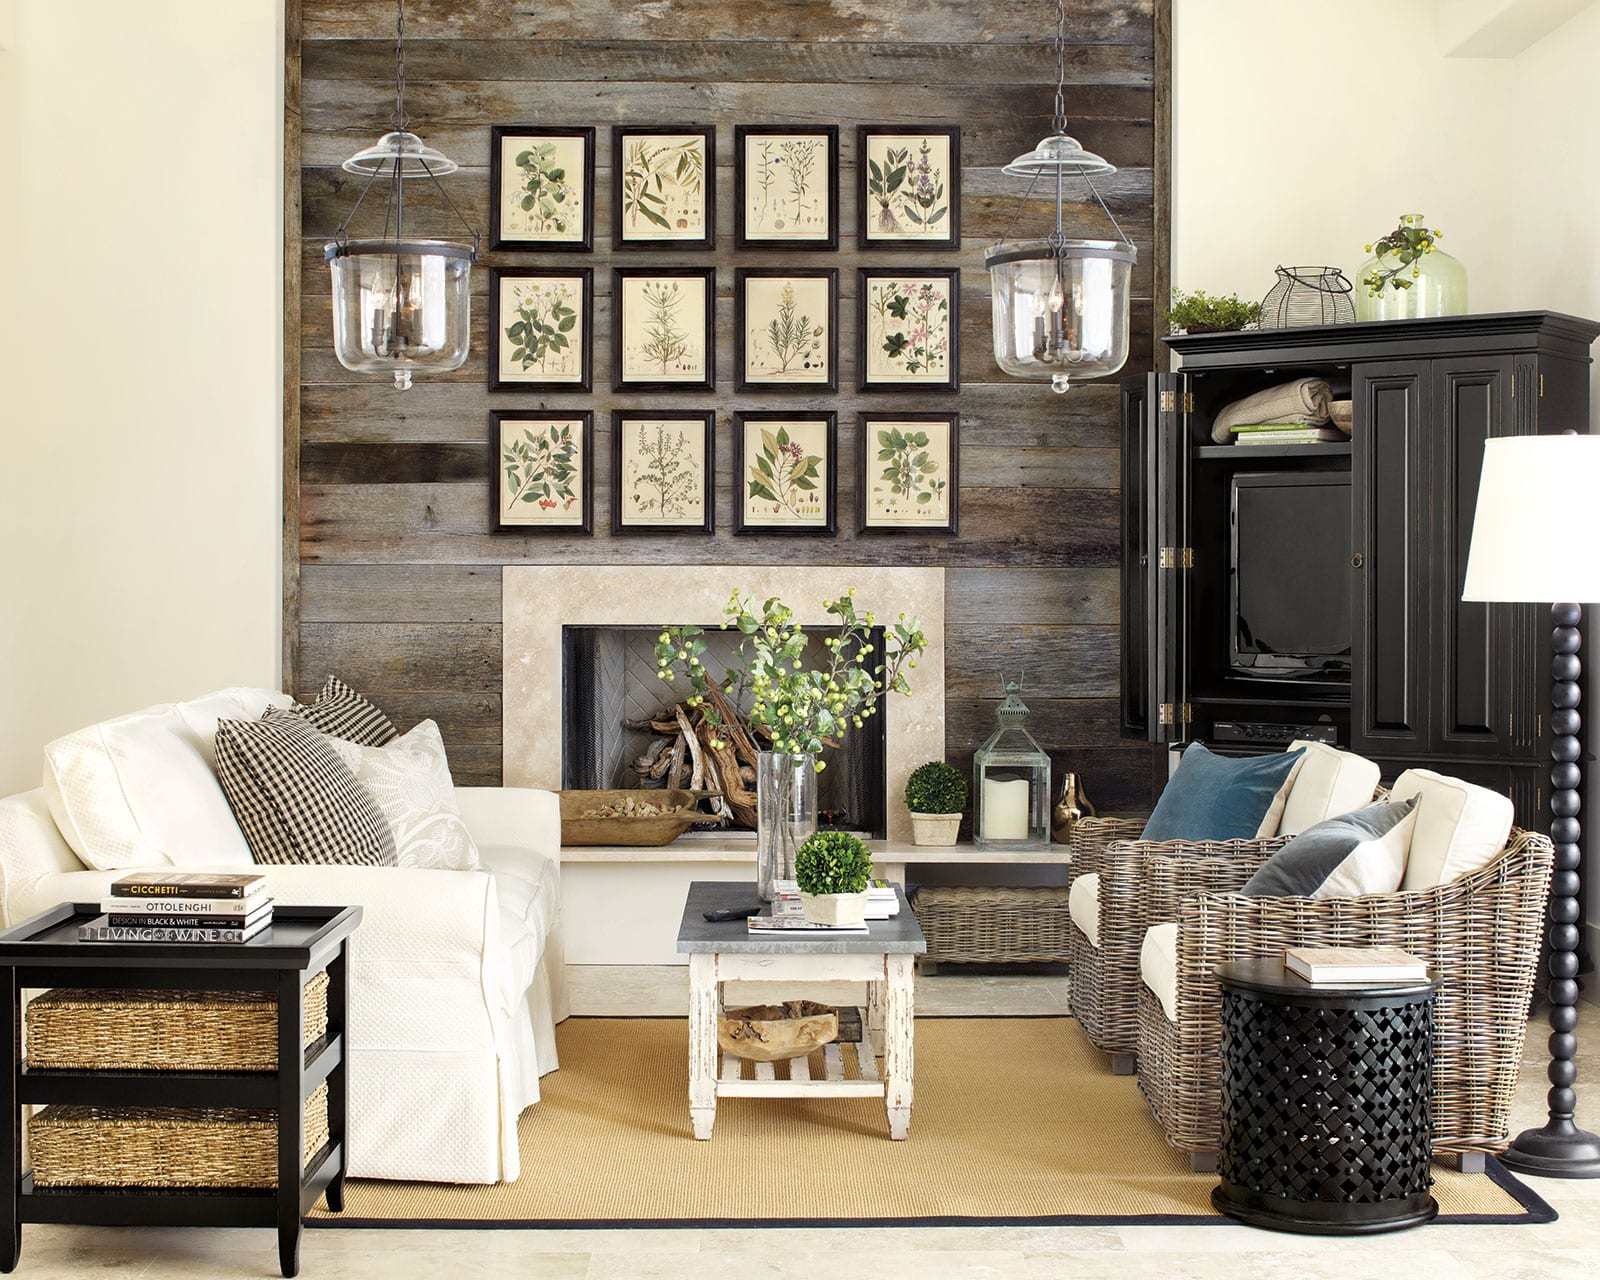 dark wood furniture living room decorating ideas decor with brown couch 6 tips for mixing tones in a how to decorate mix finishes